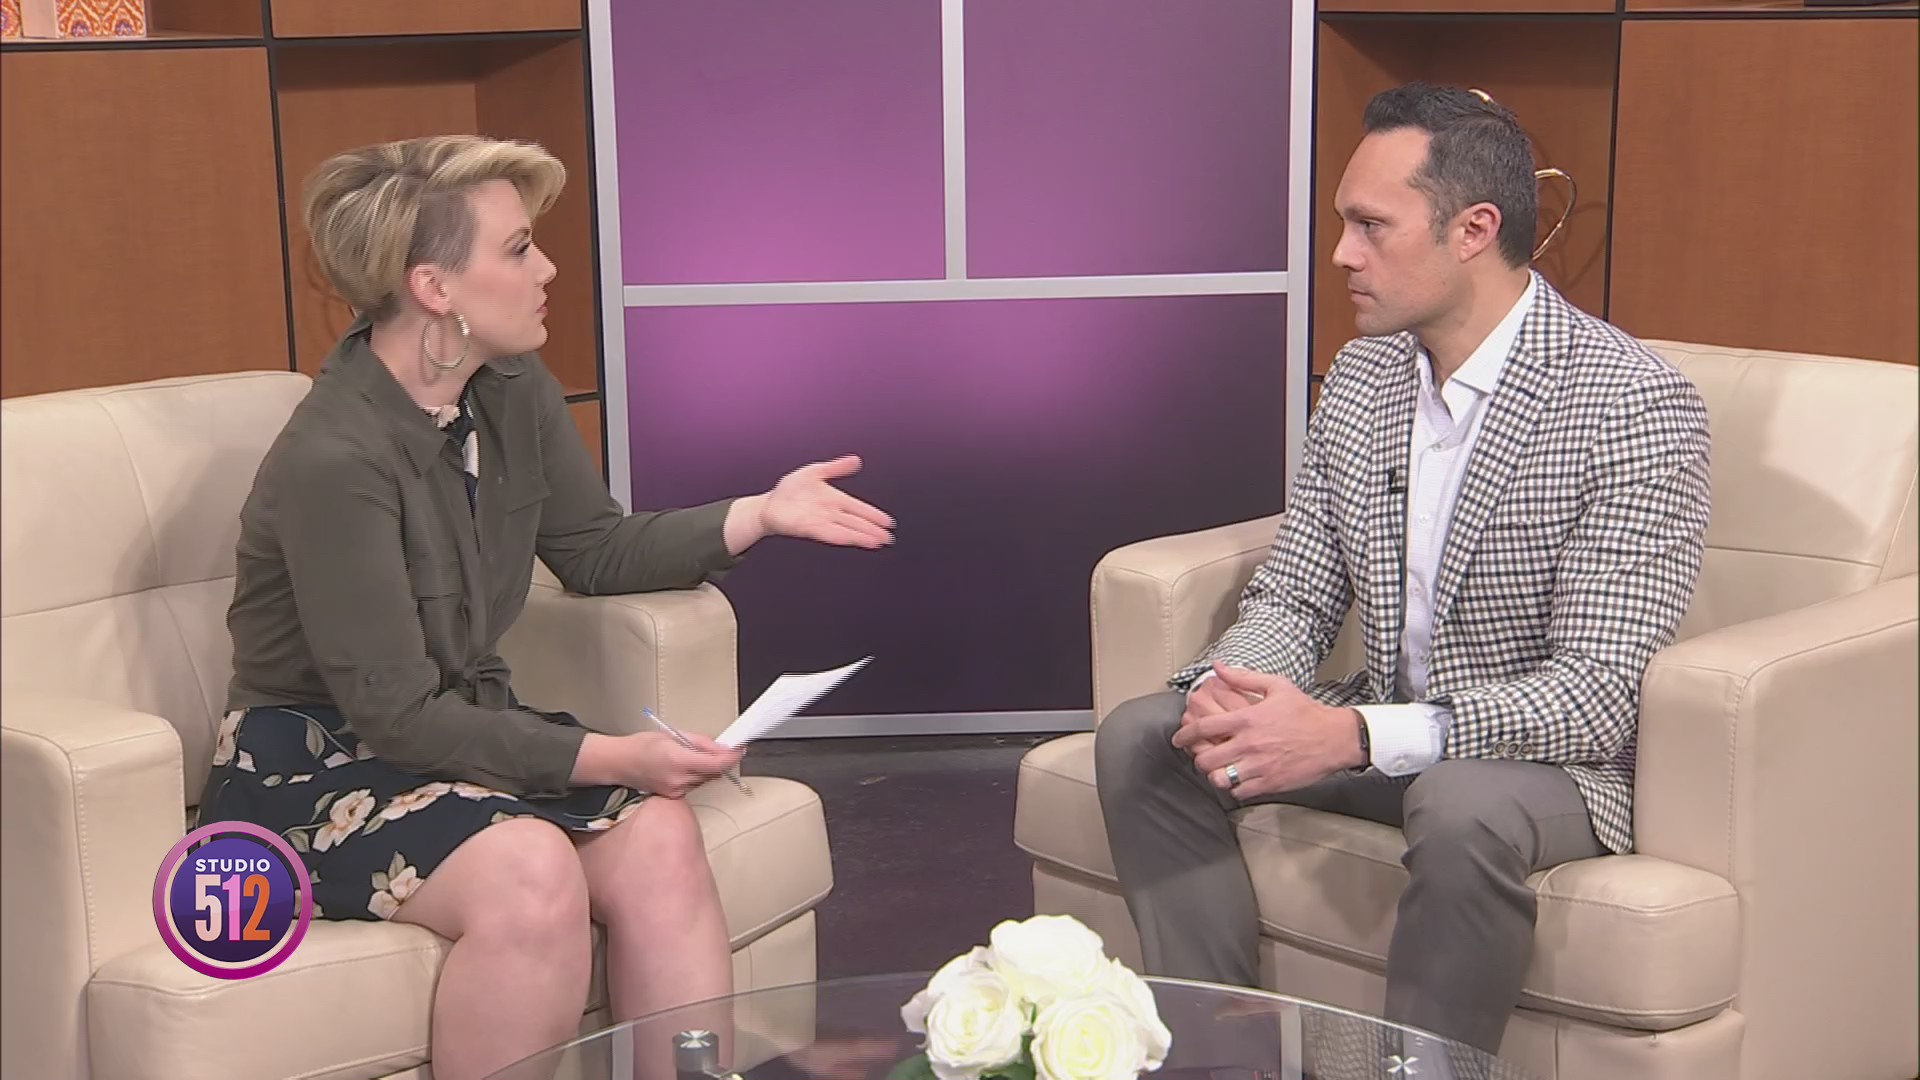 Austin Cyberknife Shares Signs And Symptoms Of Colorectal Cancer Kxan Austin